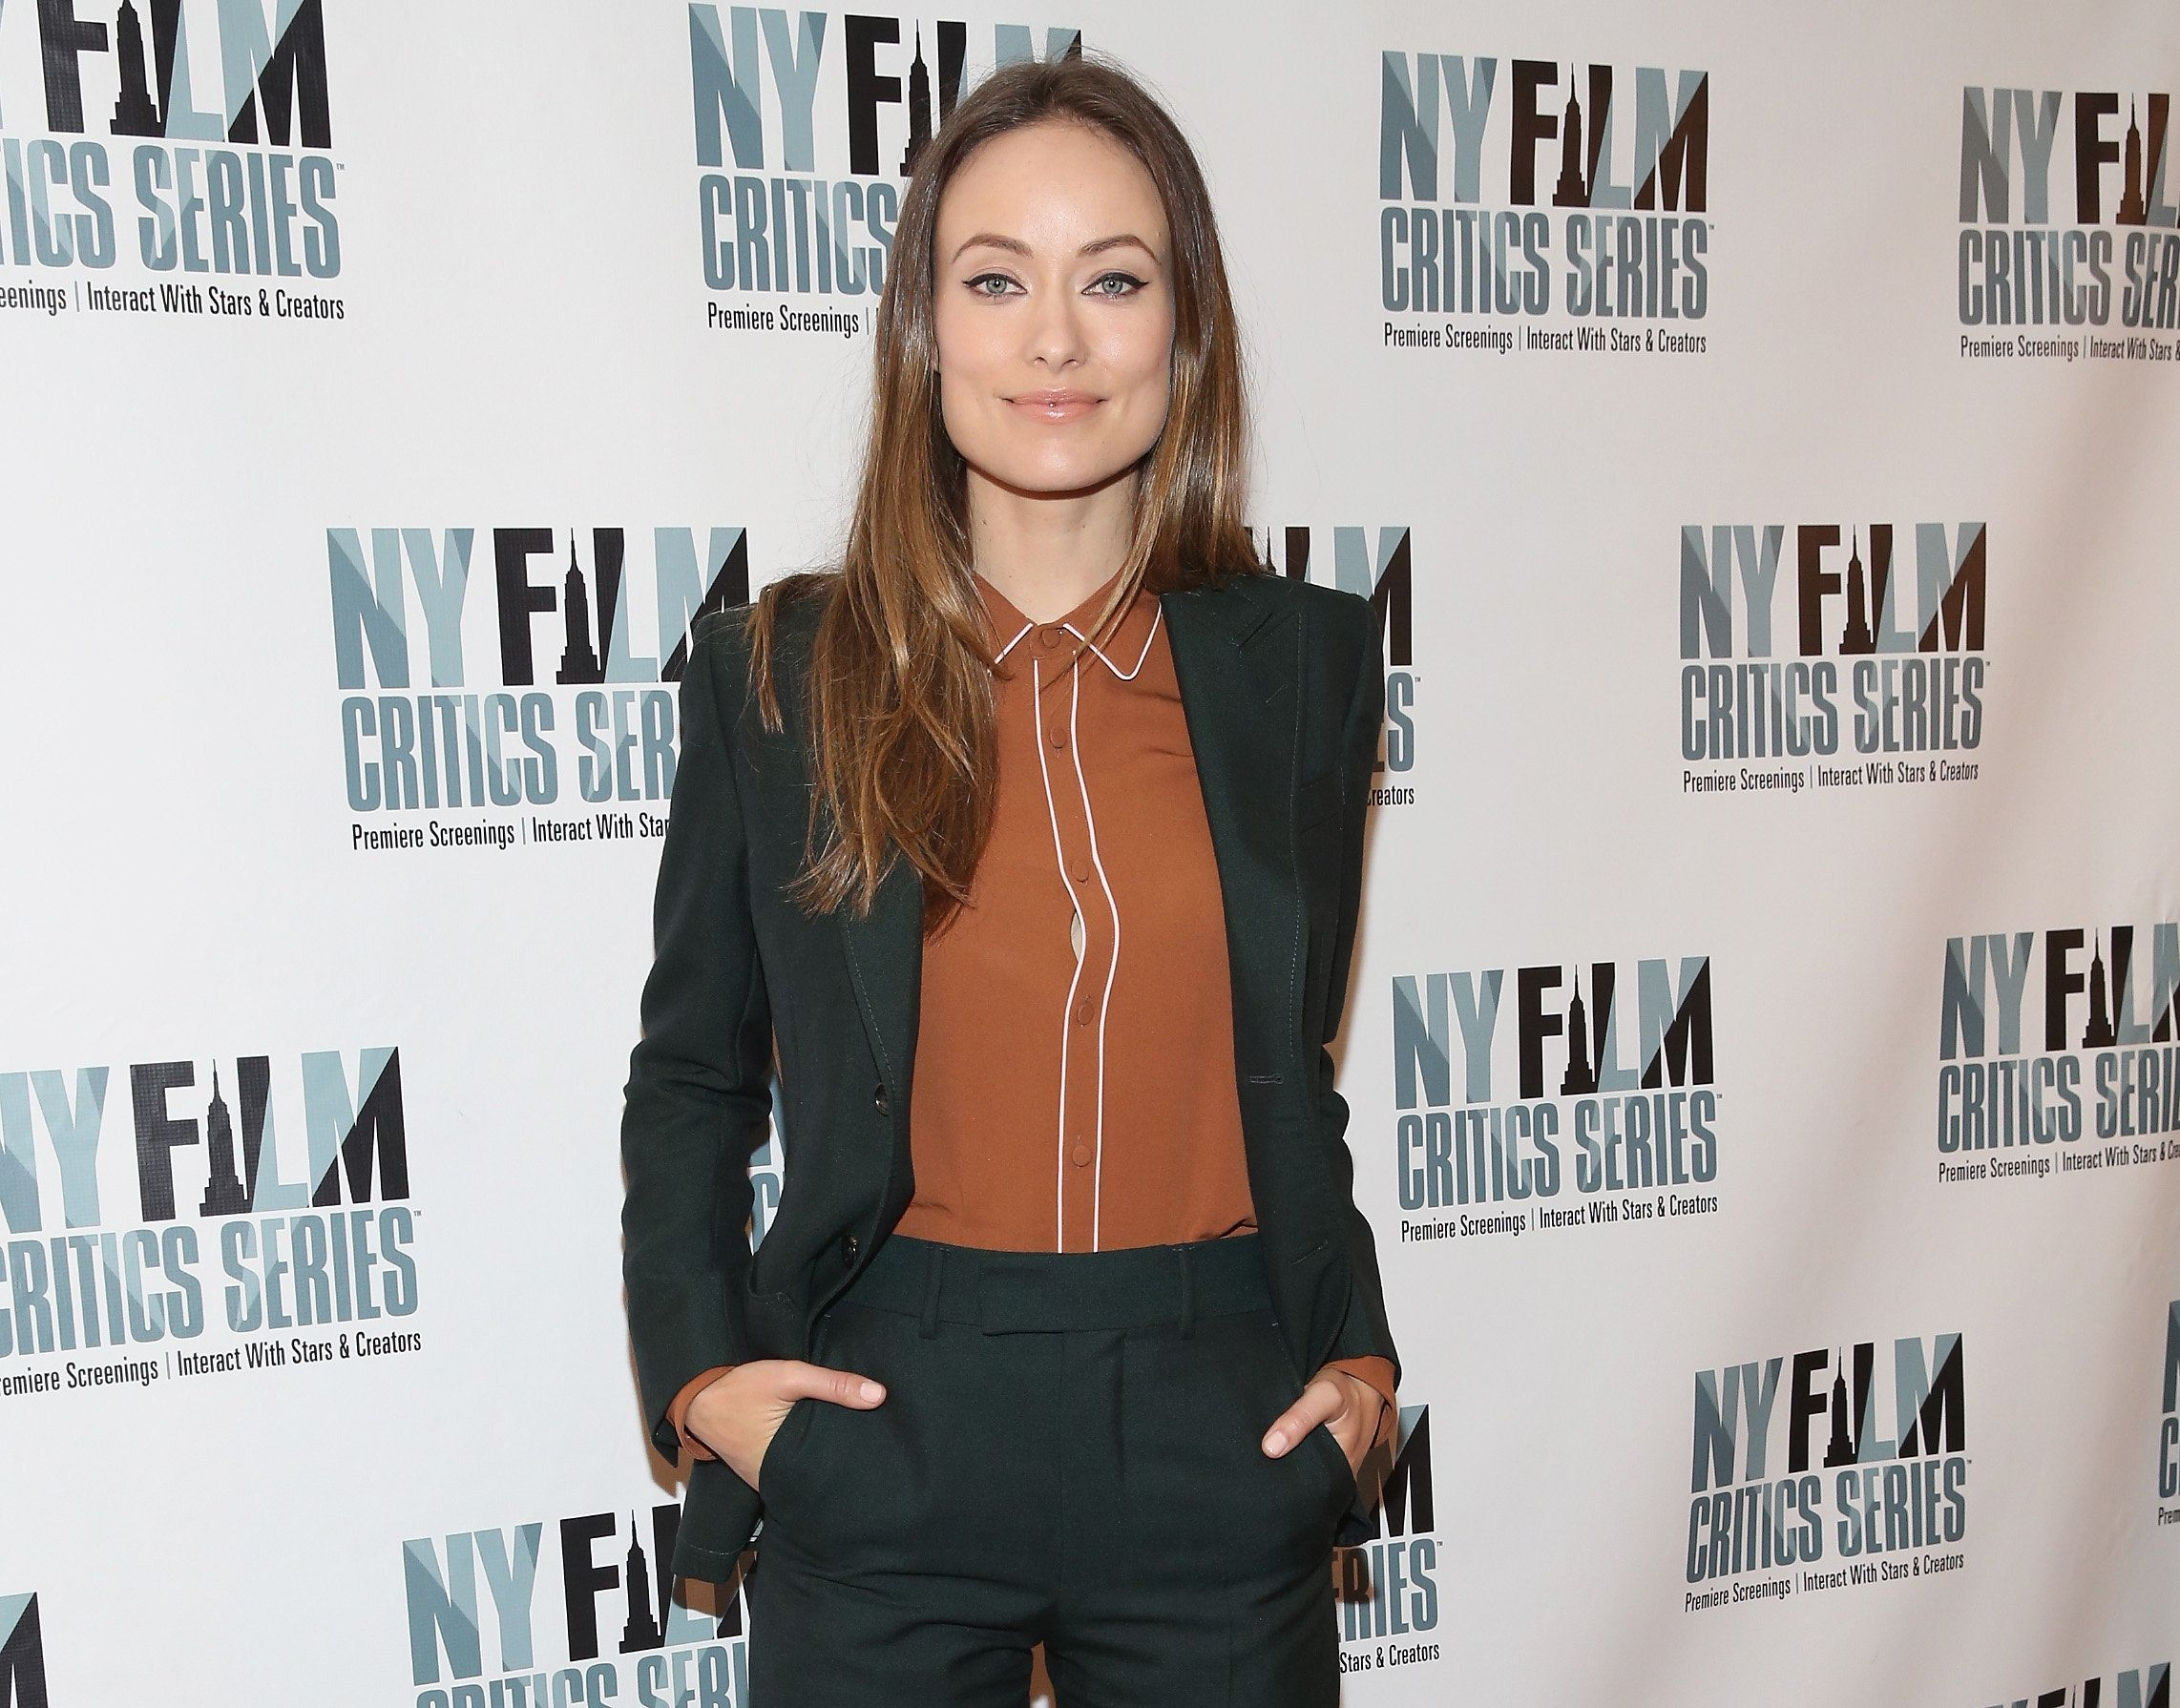 NEW YORK, NY - OCTOBER 12:  Olivia WIlde attends 'Meadowland' New York Film Critics Series Screening at AMC Empire 25 theater on October 12, 2015 in New York City.  (Photo by Robin Marchant/Getty Images)